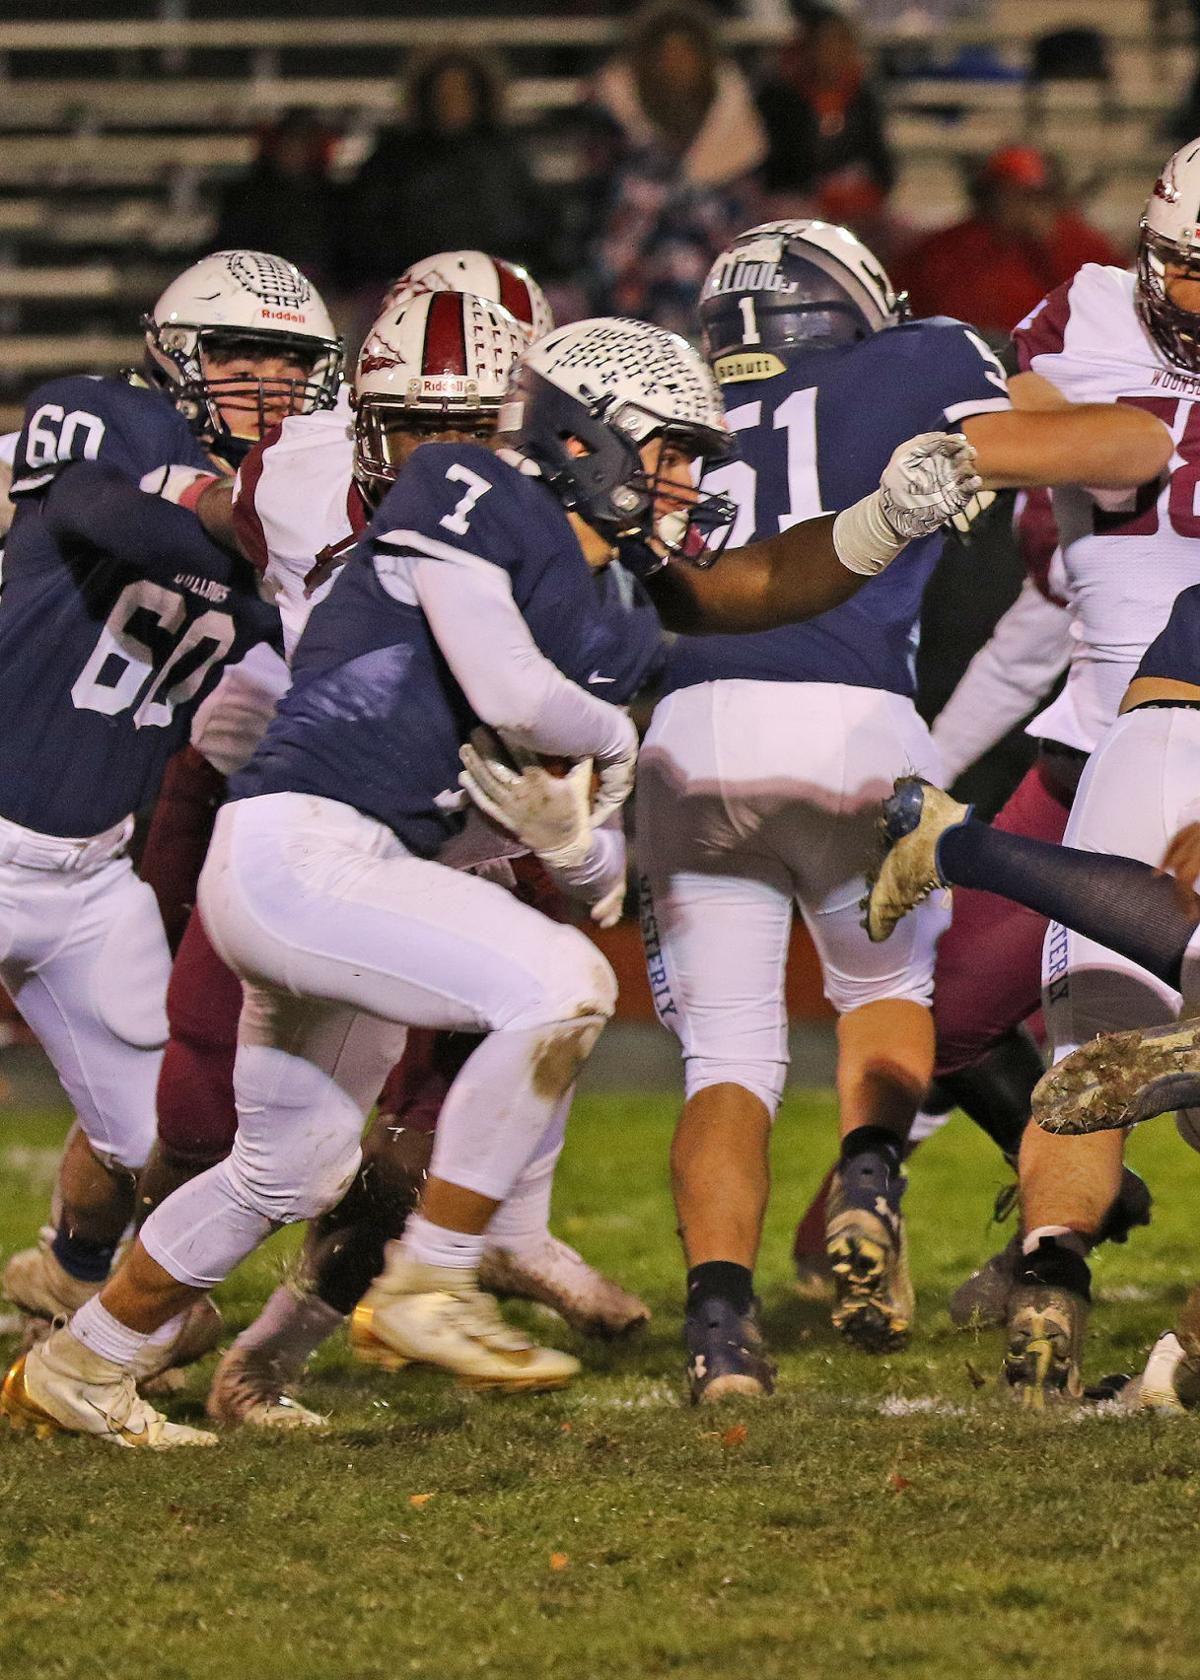 Rocco Cillino (7) runs the ball for Westerly as teammates Zack Moroin (51) and Xavier Webster (6) block during the Westerly vs Woonsocket boys varsity football DIV-II playoff game on Friday evening, November 8th, 2019, at Westerly High School's Augeri Field, Westerly, RI.   Jackie L. Turner, Special to The Sun